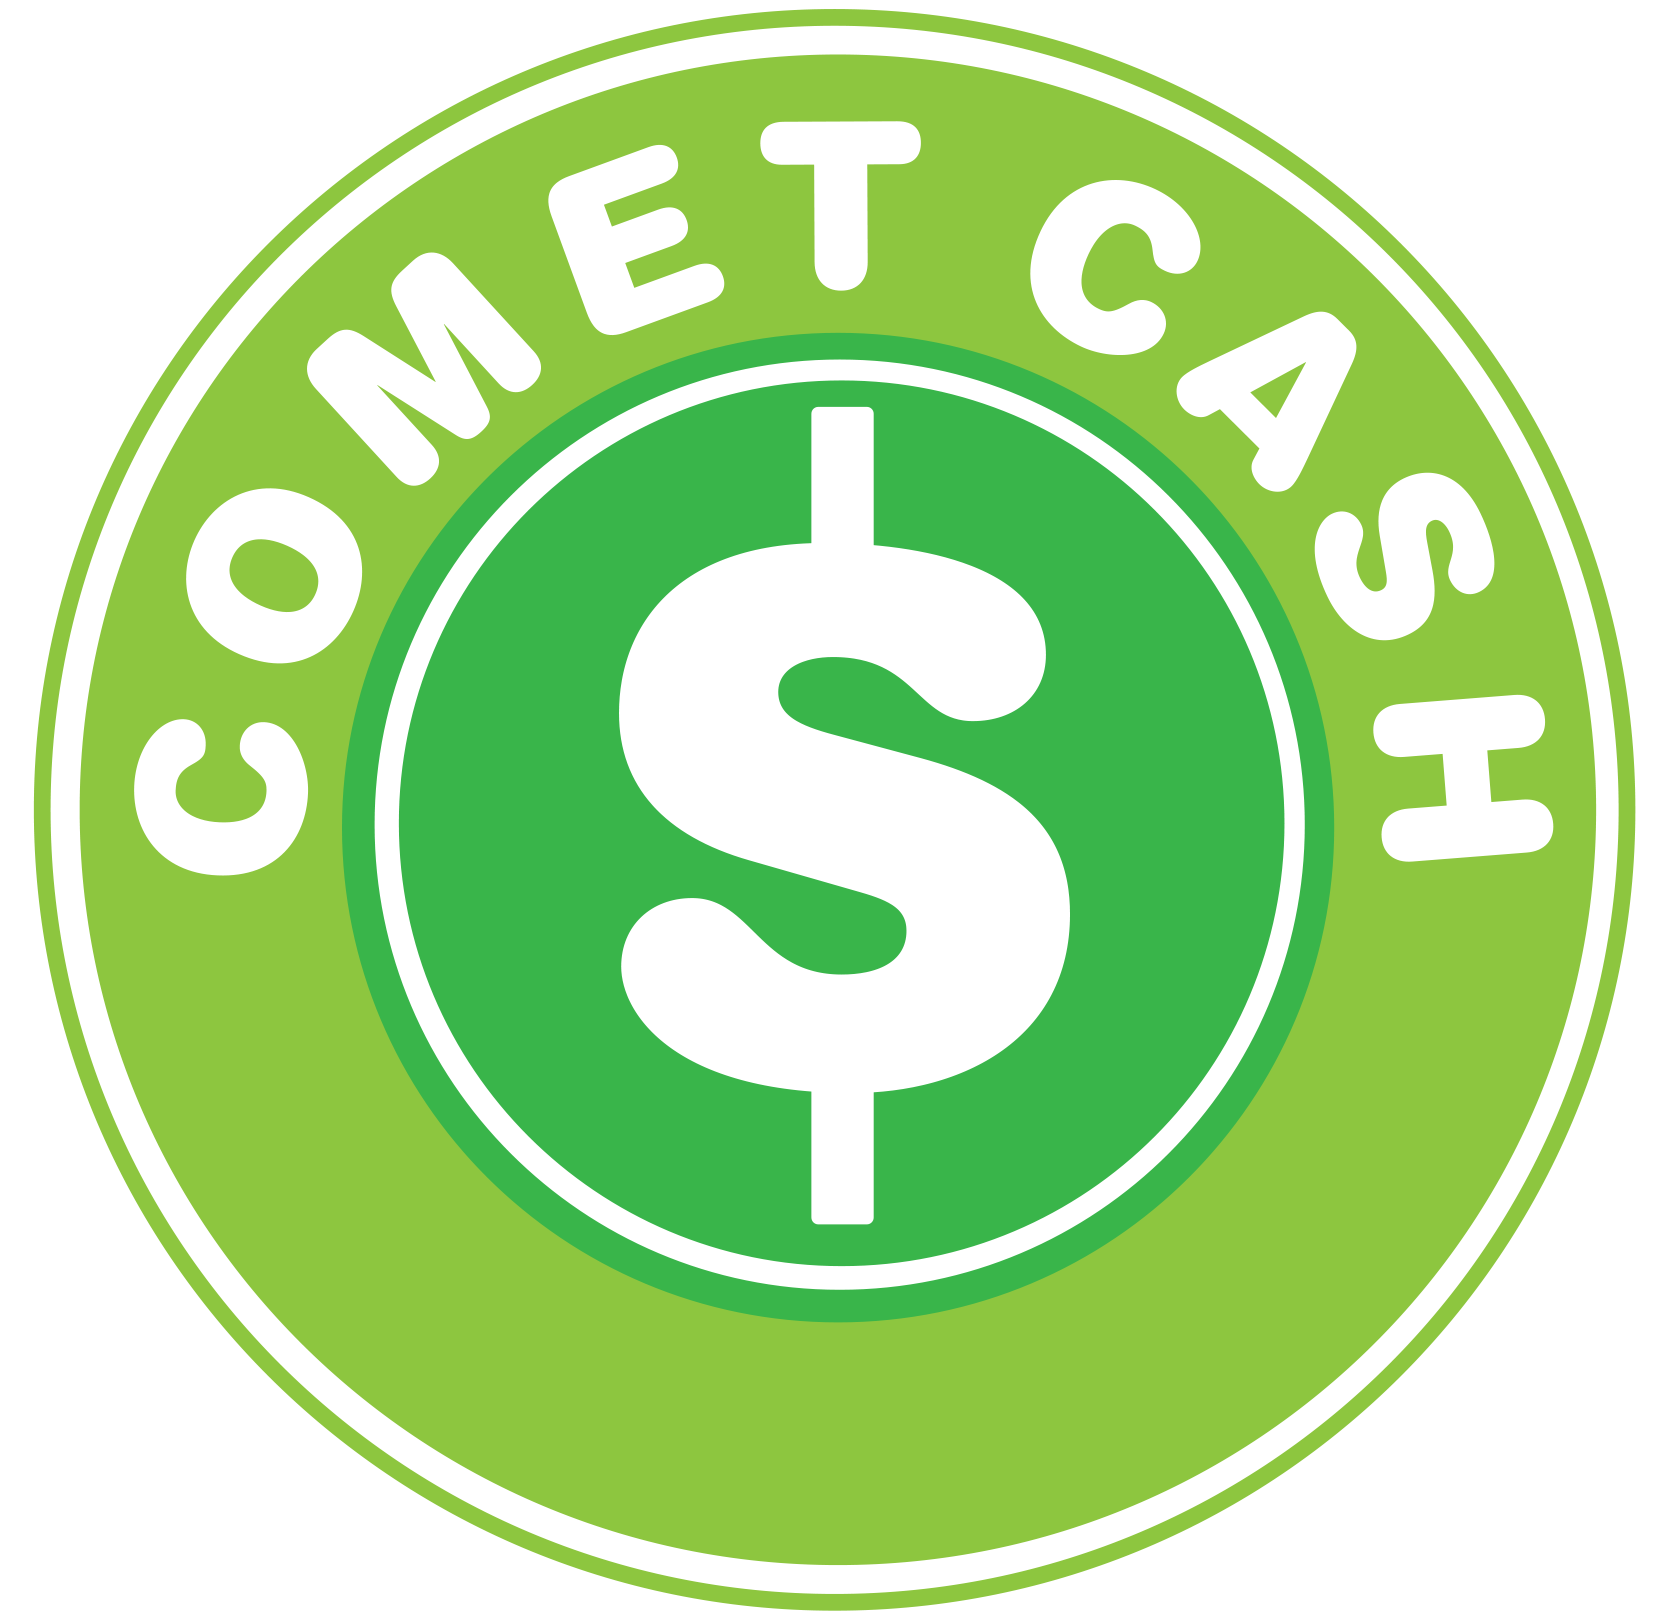 Lunch money clipart free